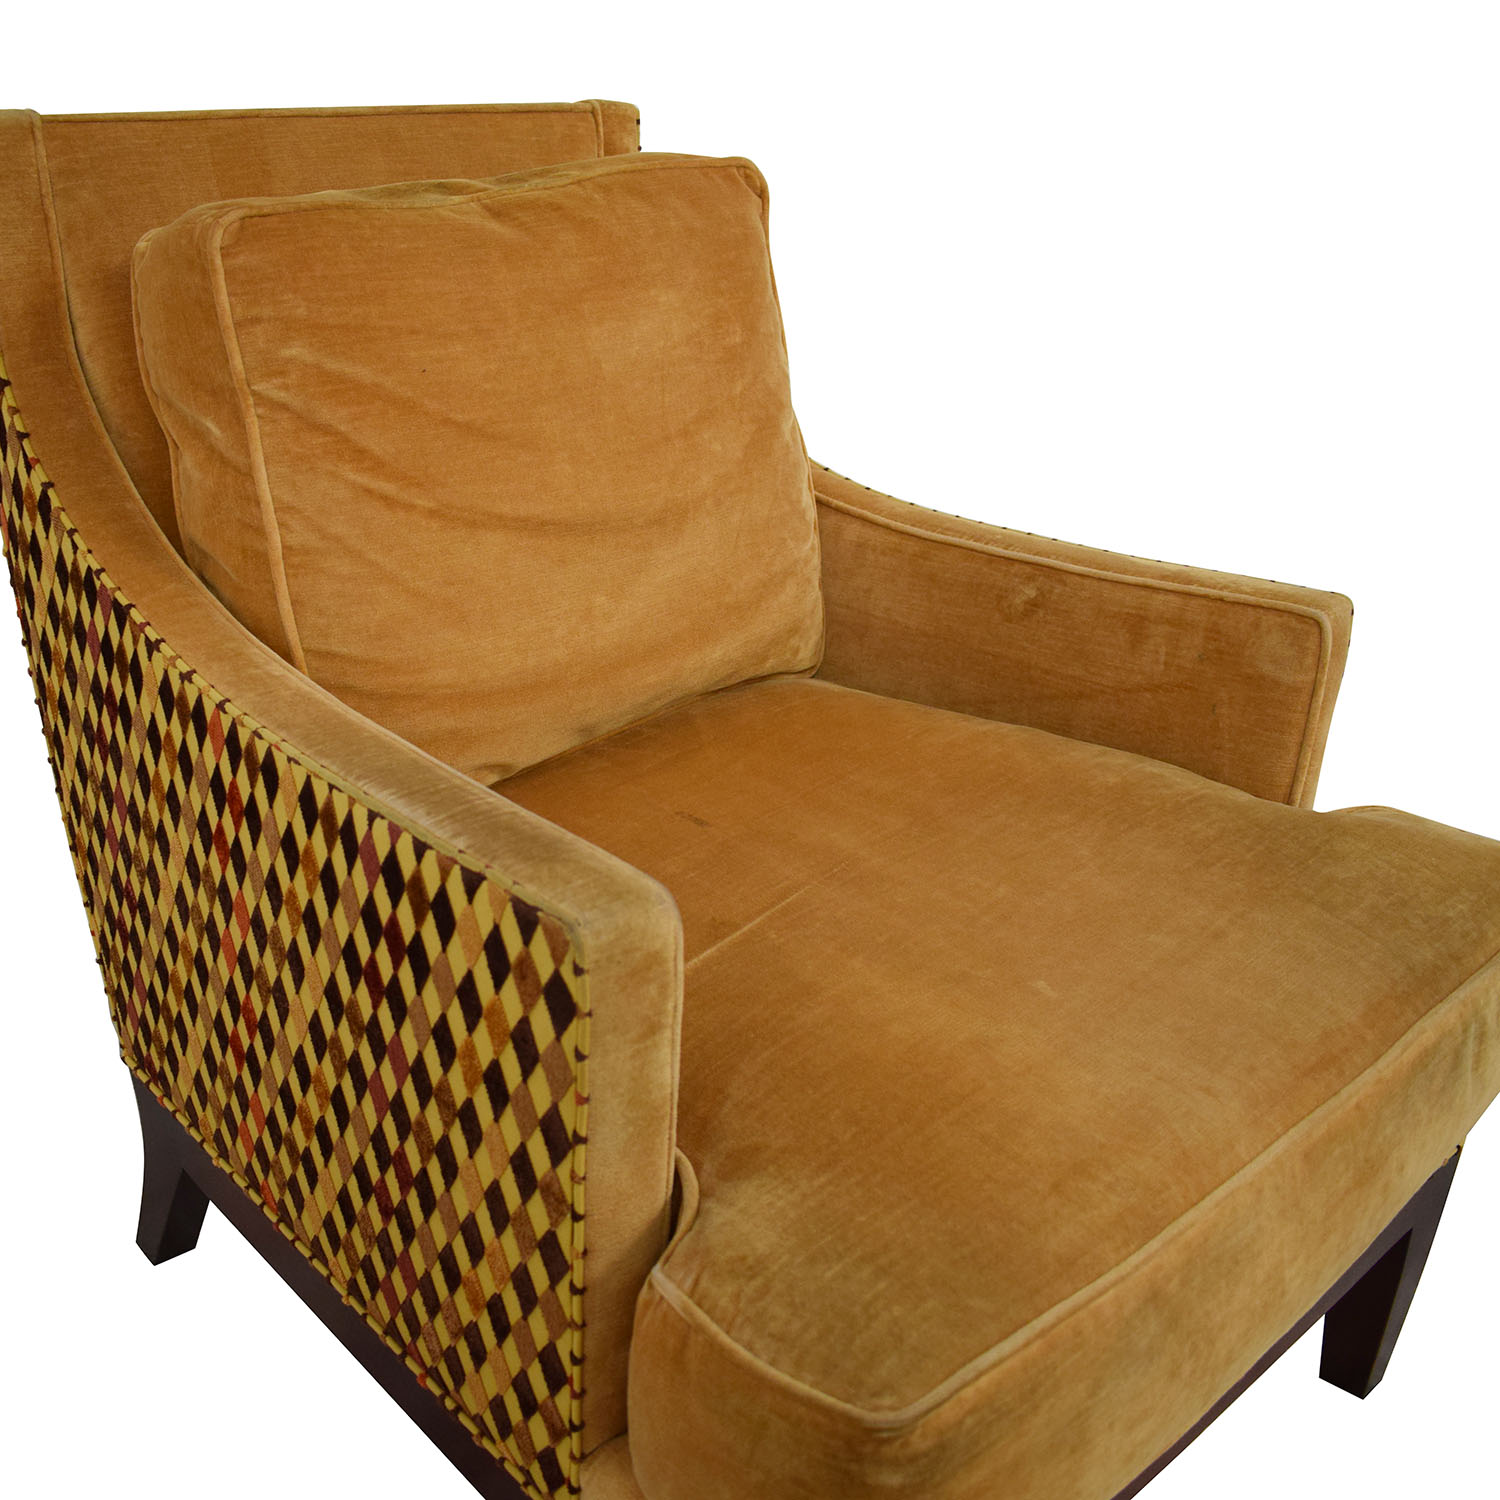 Stickley Furniture Stickley Mid Century Accent Chair dimensions